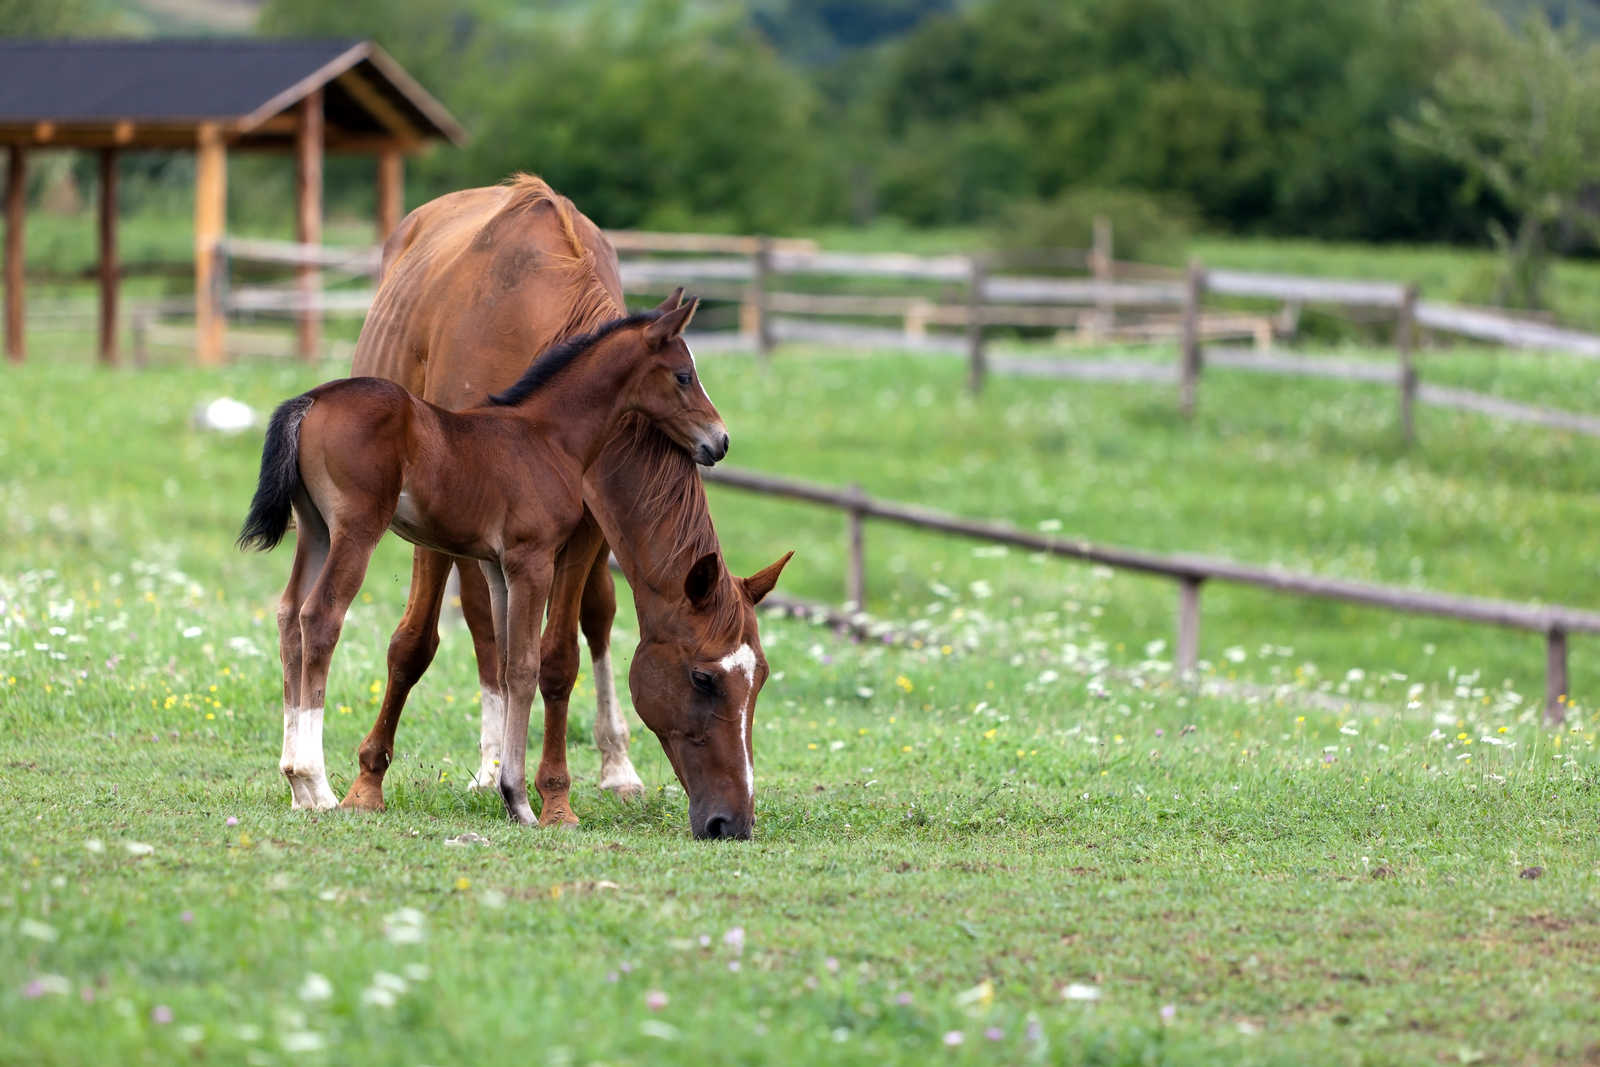 Horse with baby foal